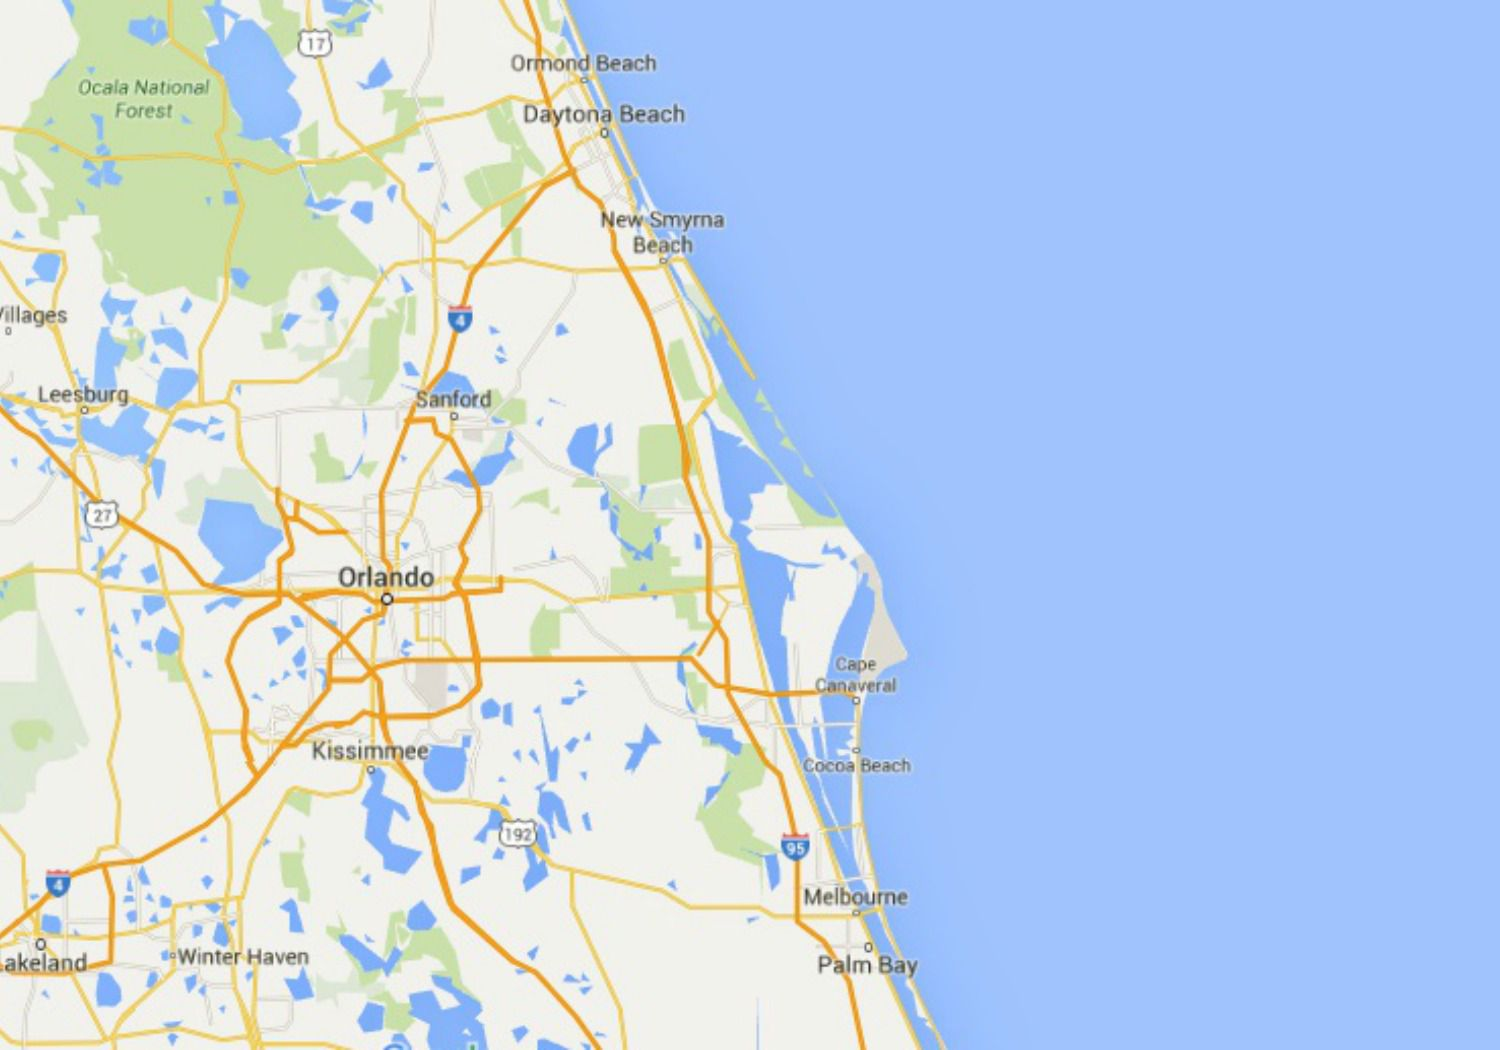 Map Florida East Coast.Maps Of Florida Orlando Tampa Miami Keys And More